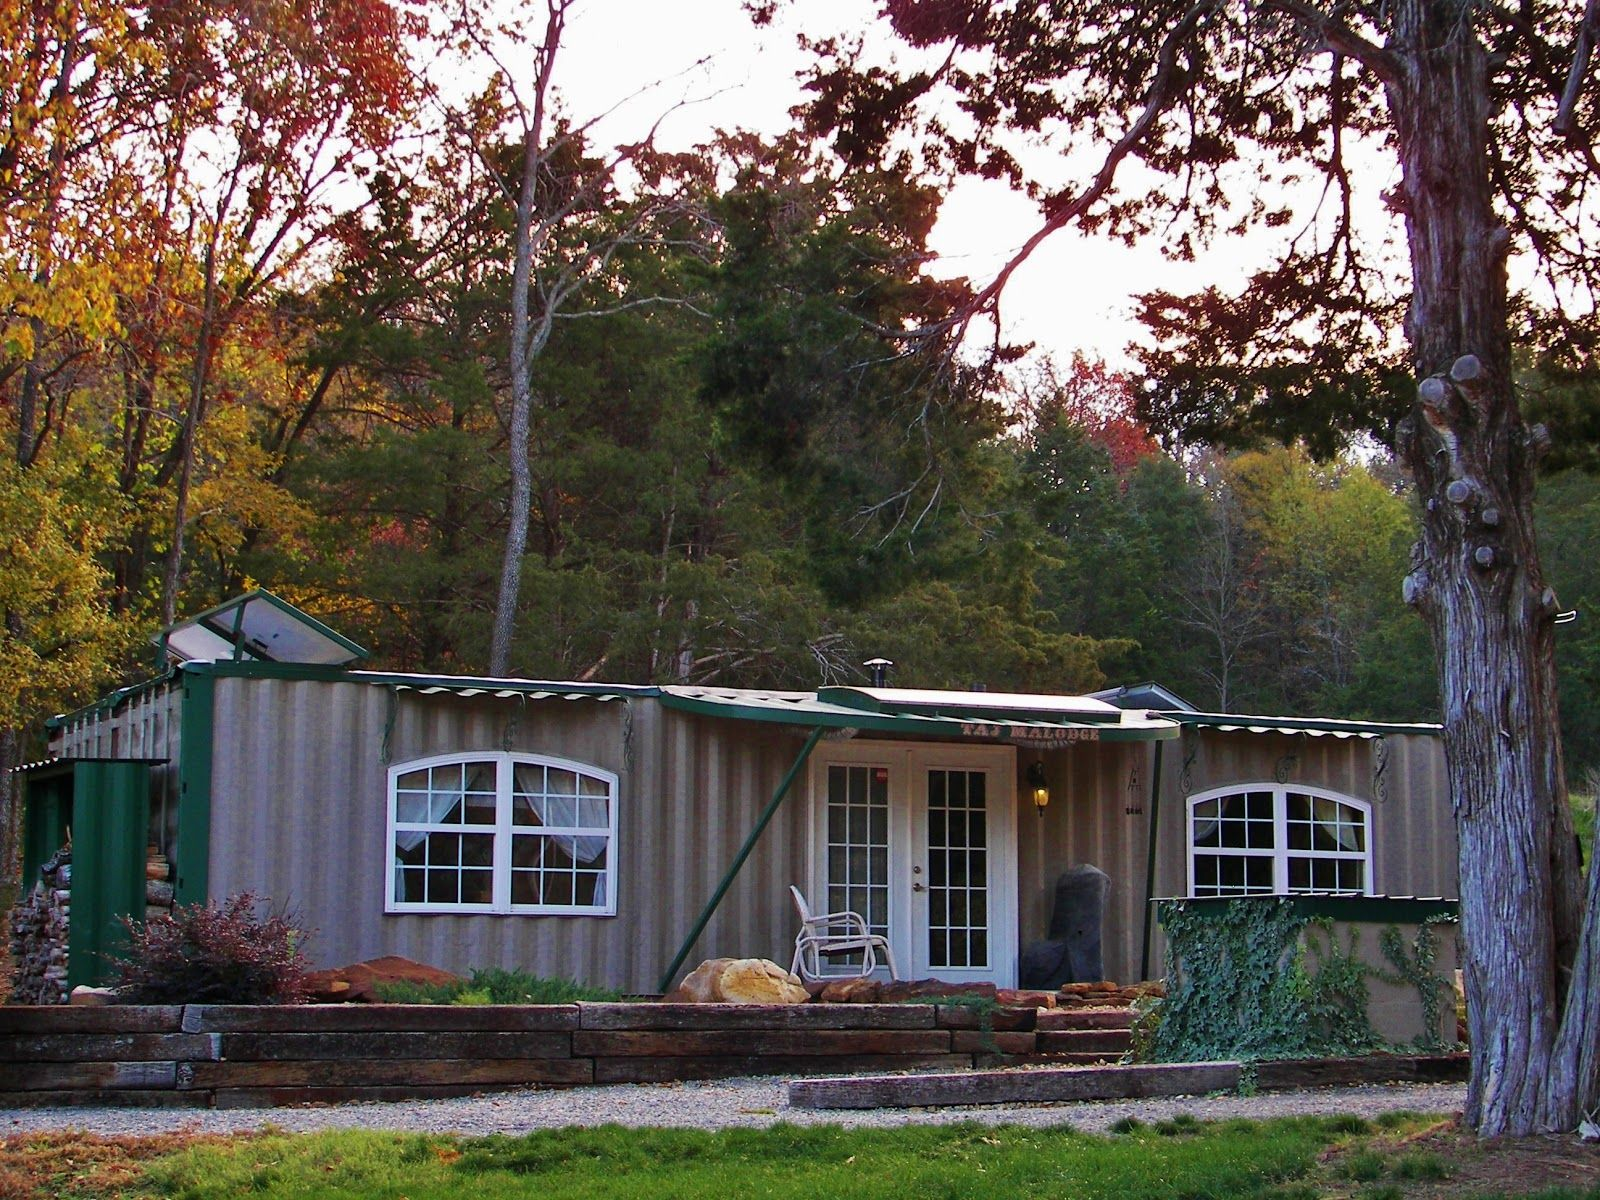 Glamorous Simple Inexpensive Shipping Container Homes Pics Decoration  Inspiration. Gallery at Astonishing Simple Shipping Container Homes Images  Ideas